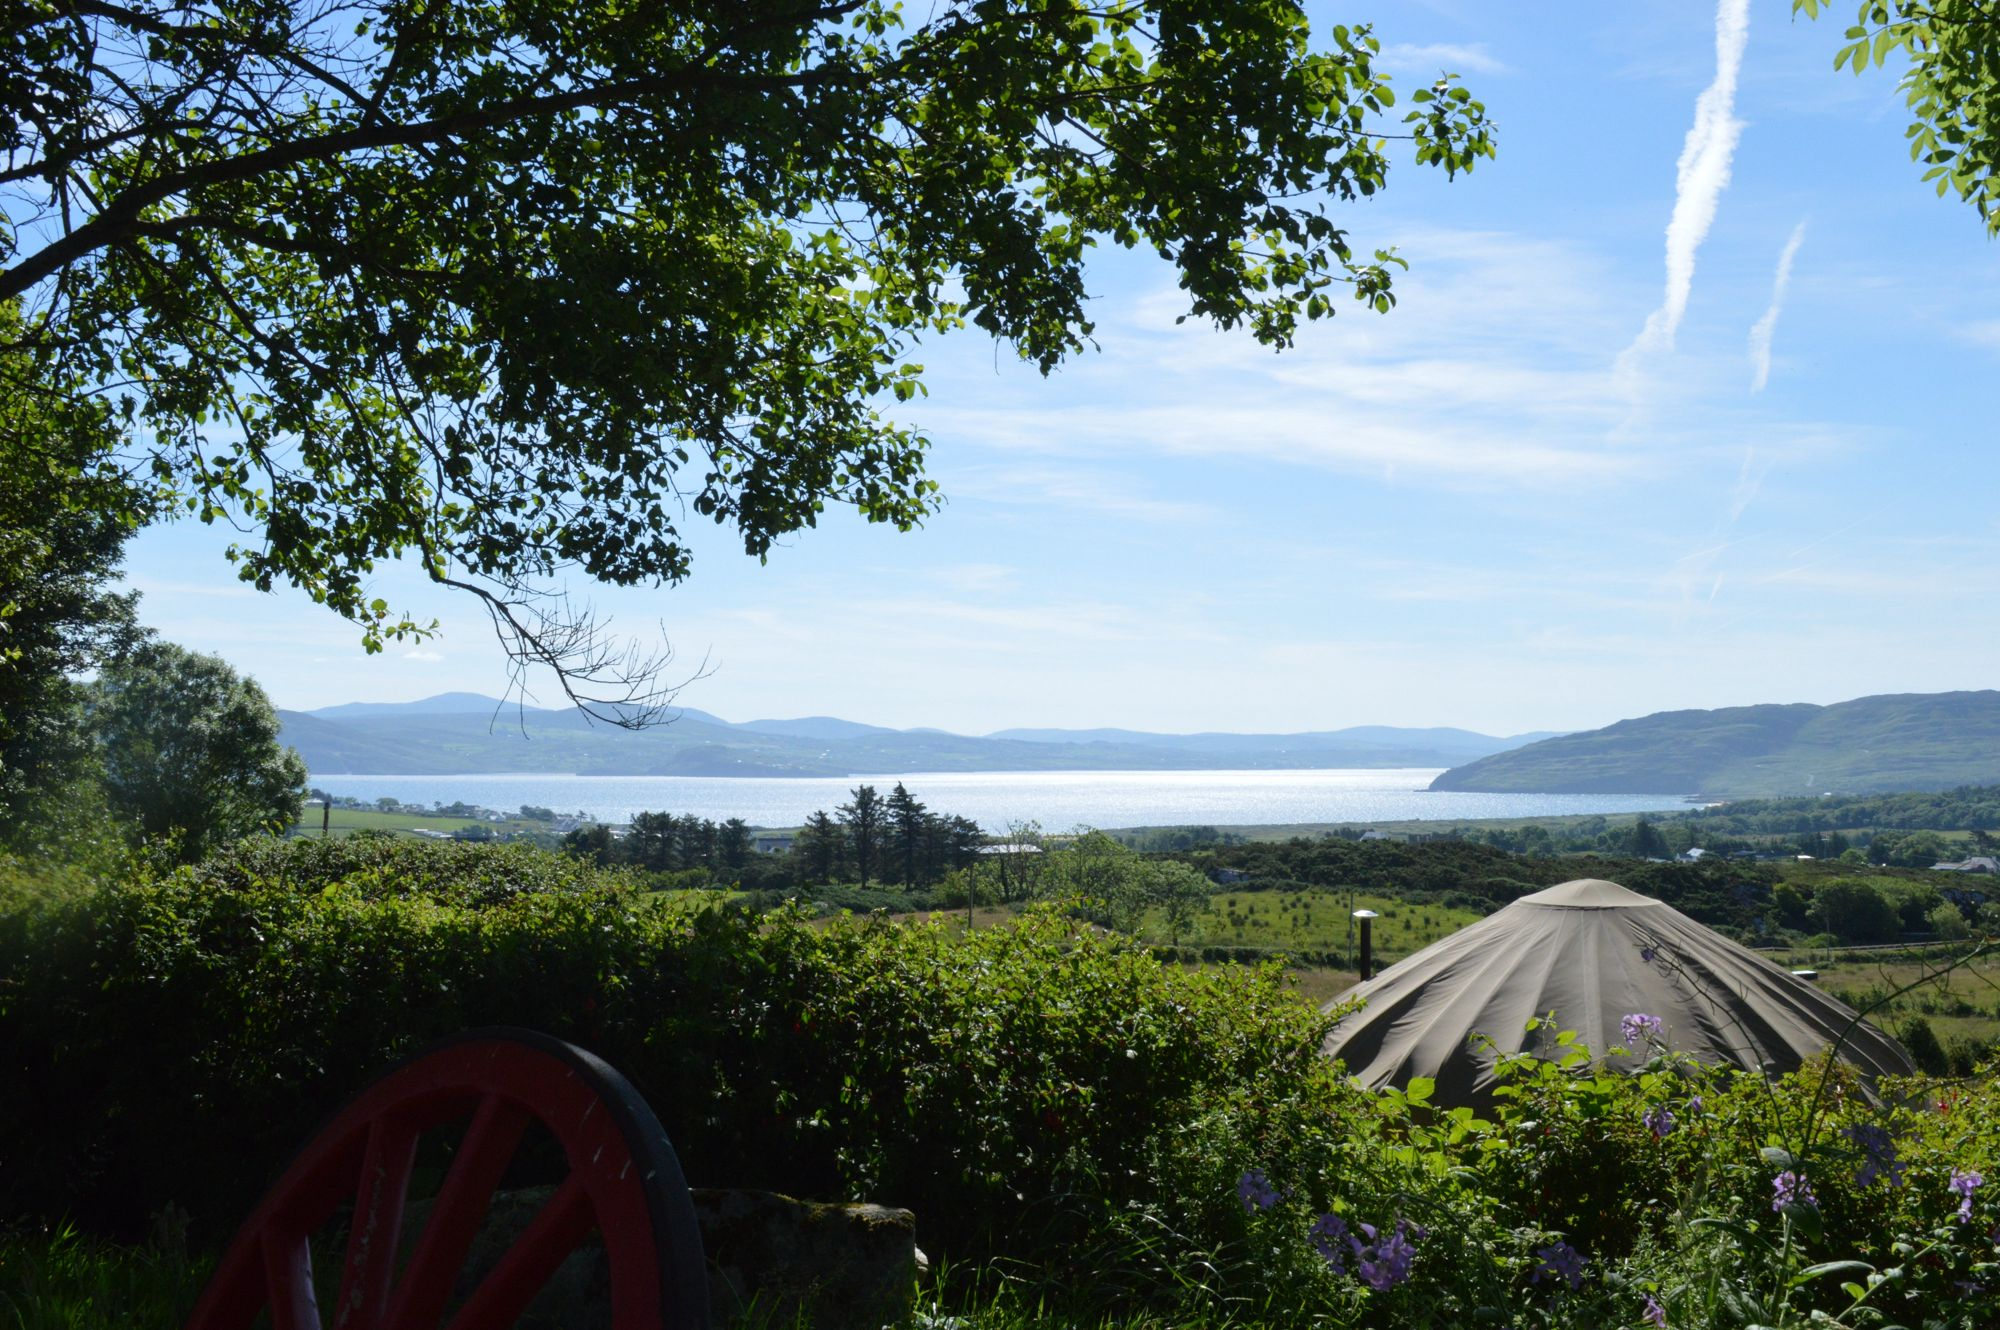 Luxury glamping in the heart of Donegal with Ireland's best beach in easy reach.